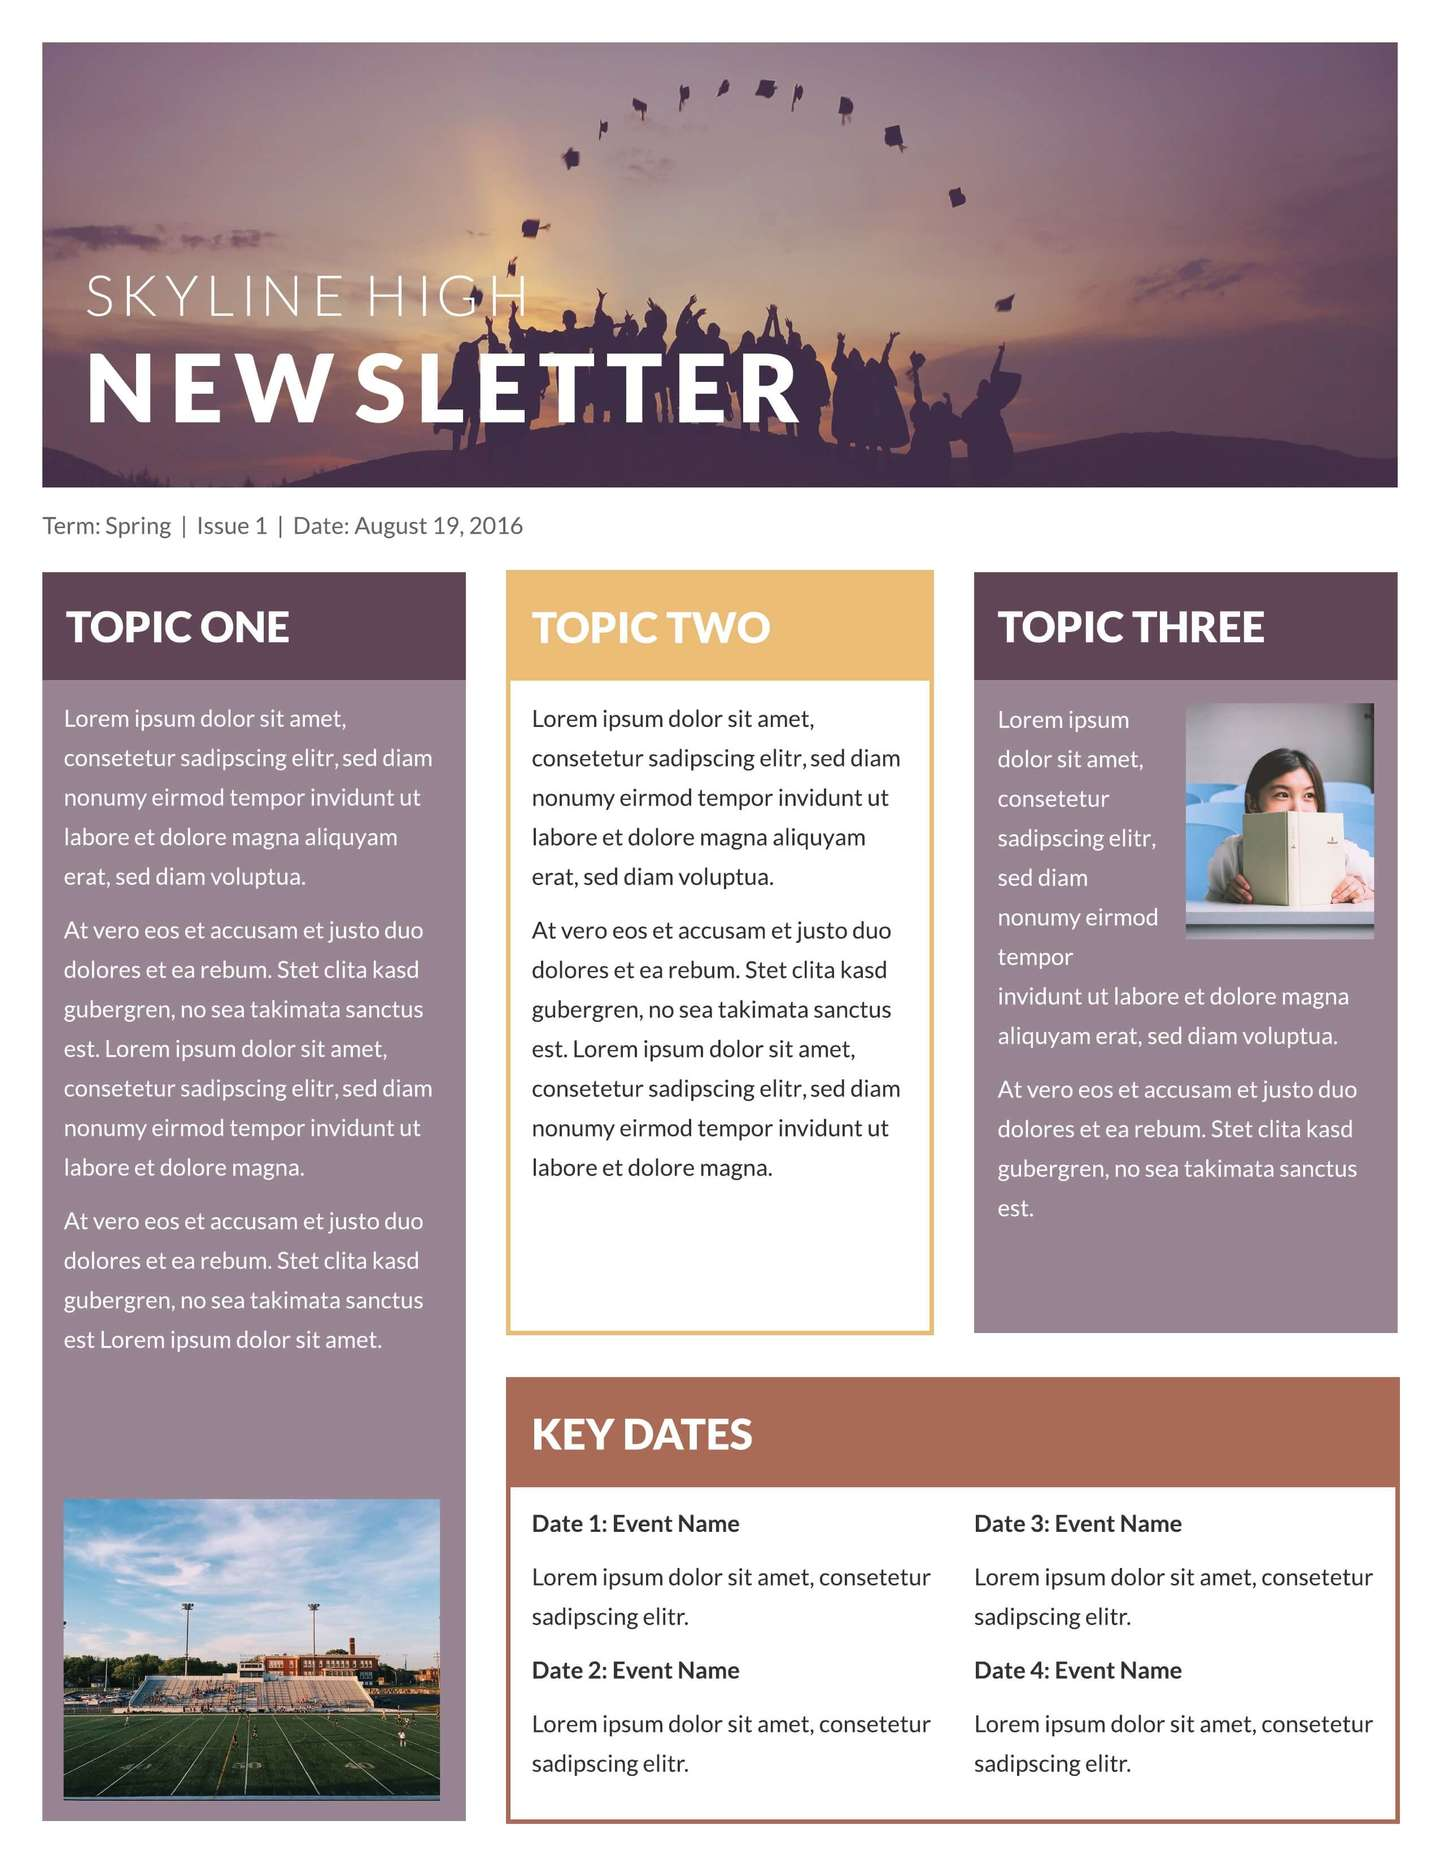 Free printable newsletter templates email newsletter examples skyline high classroom newsletter template wajeb Gallery